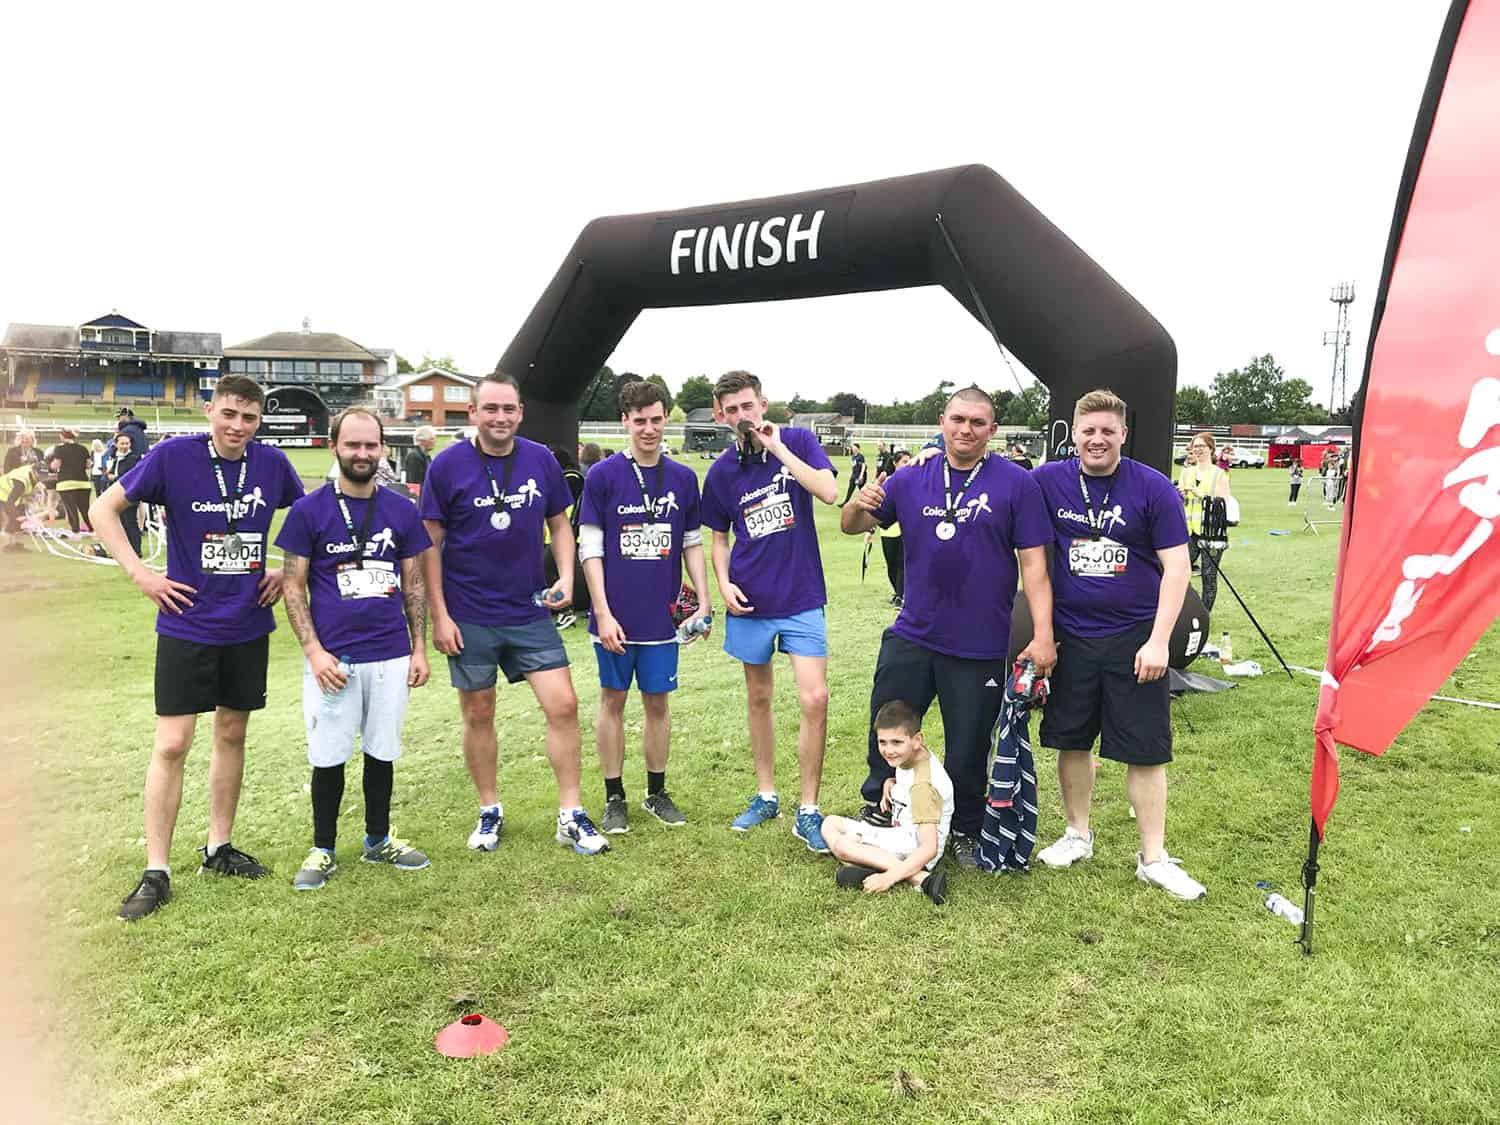 5k obstacle run